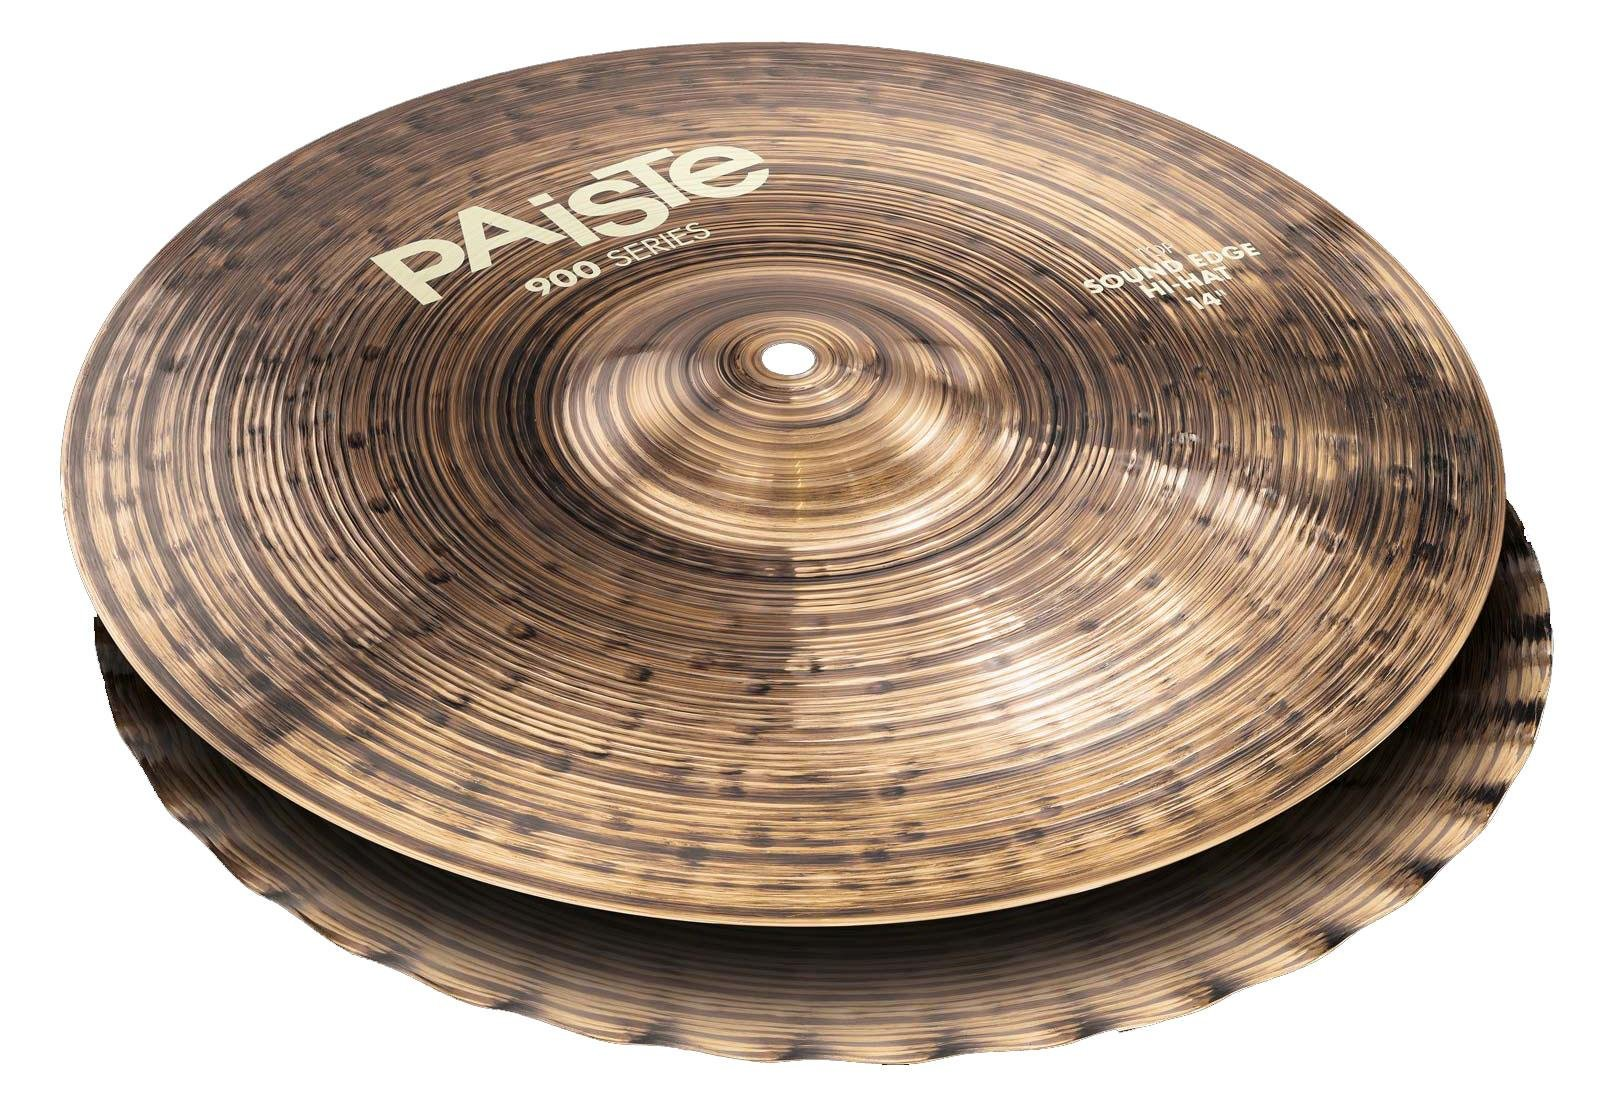 Paiste 14 Inches 900 Series Sound Edge Hi-Hat Cymbals by Paiste